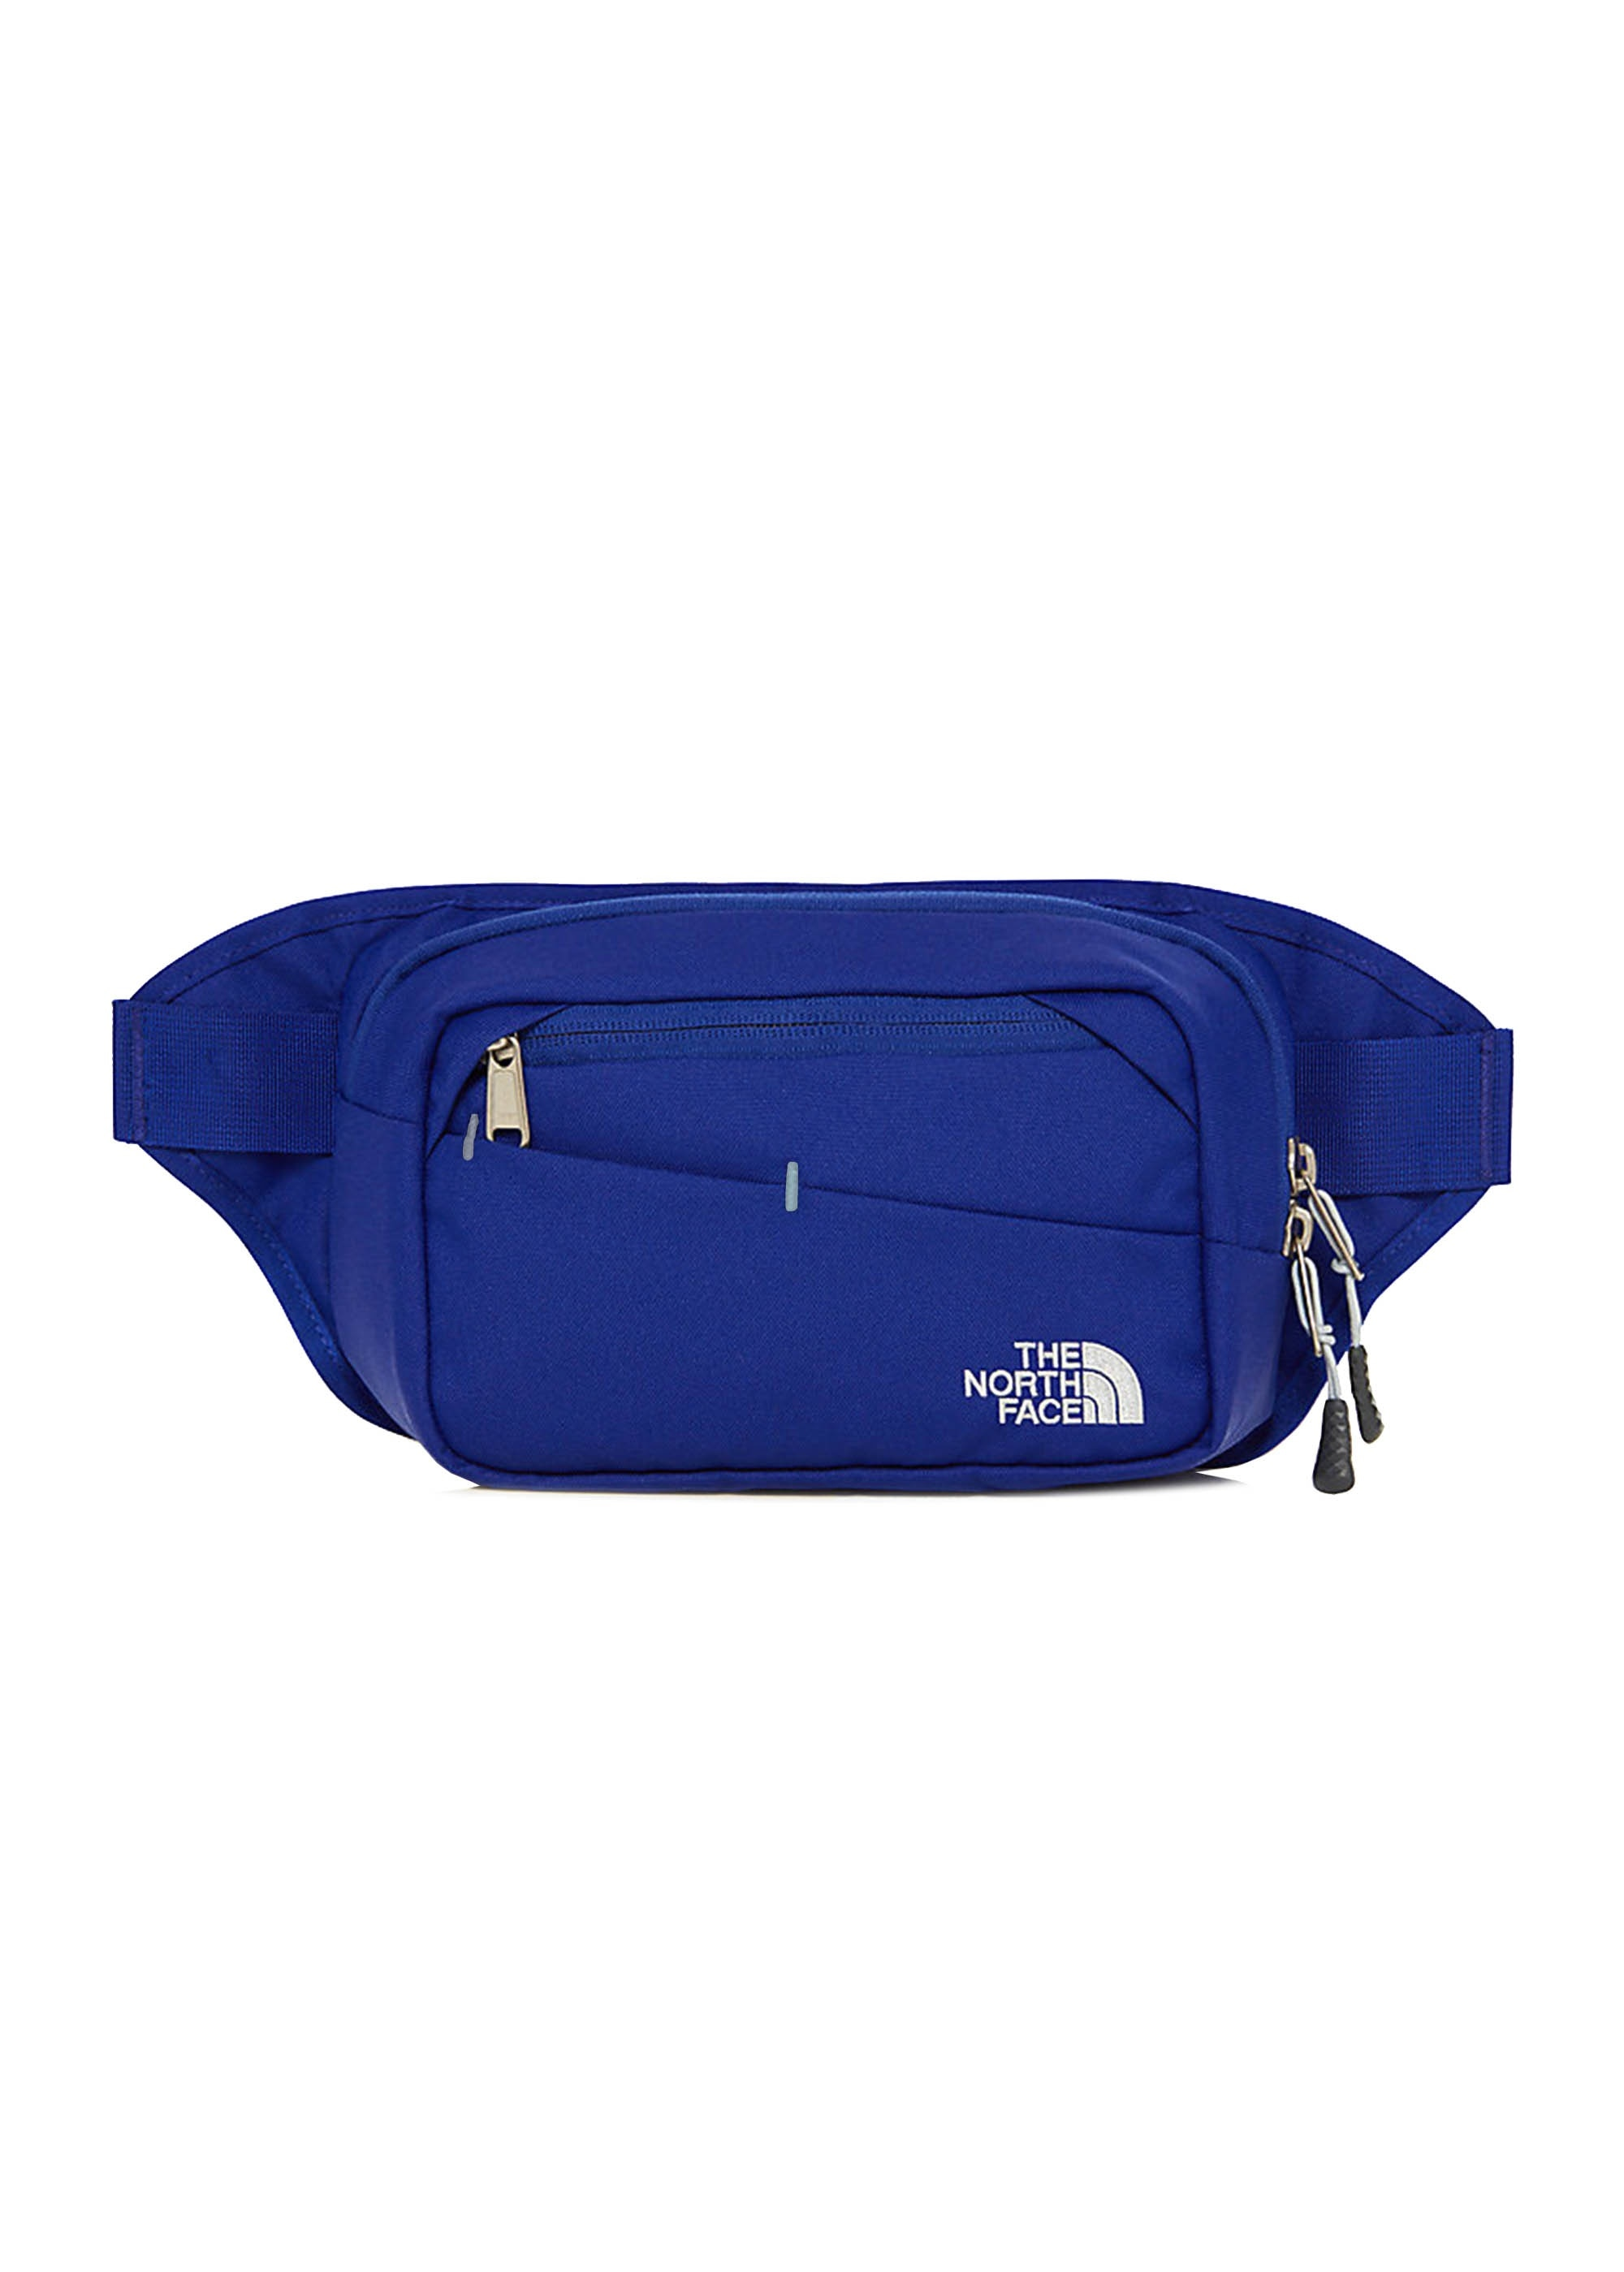 fedf98798 The North Face Bozer Hip Pack II - Aztec Blue